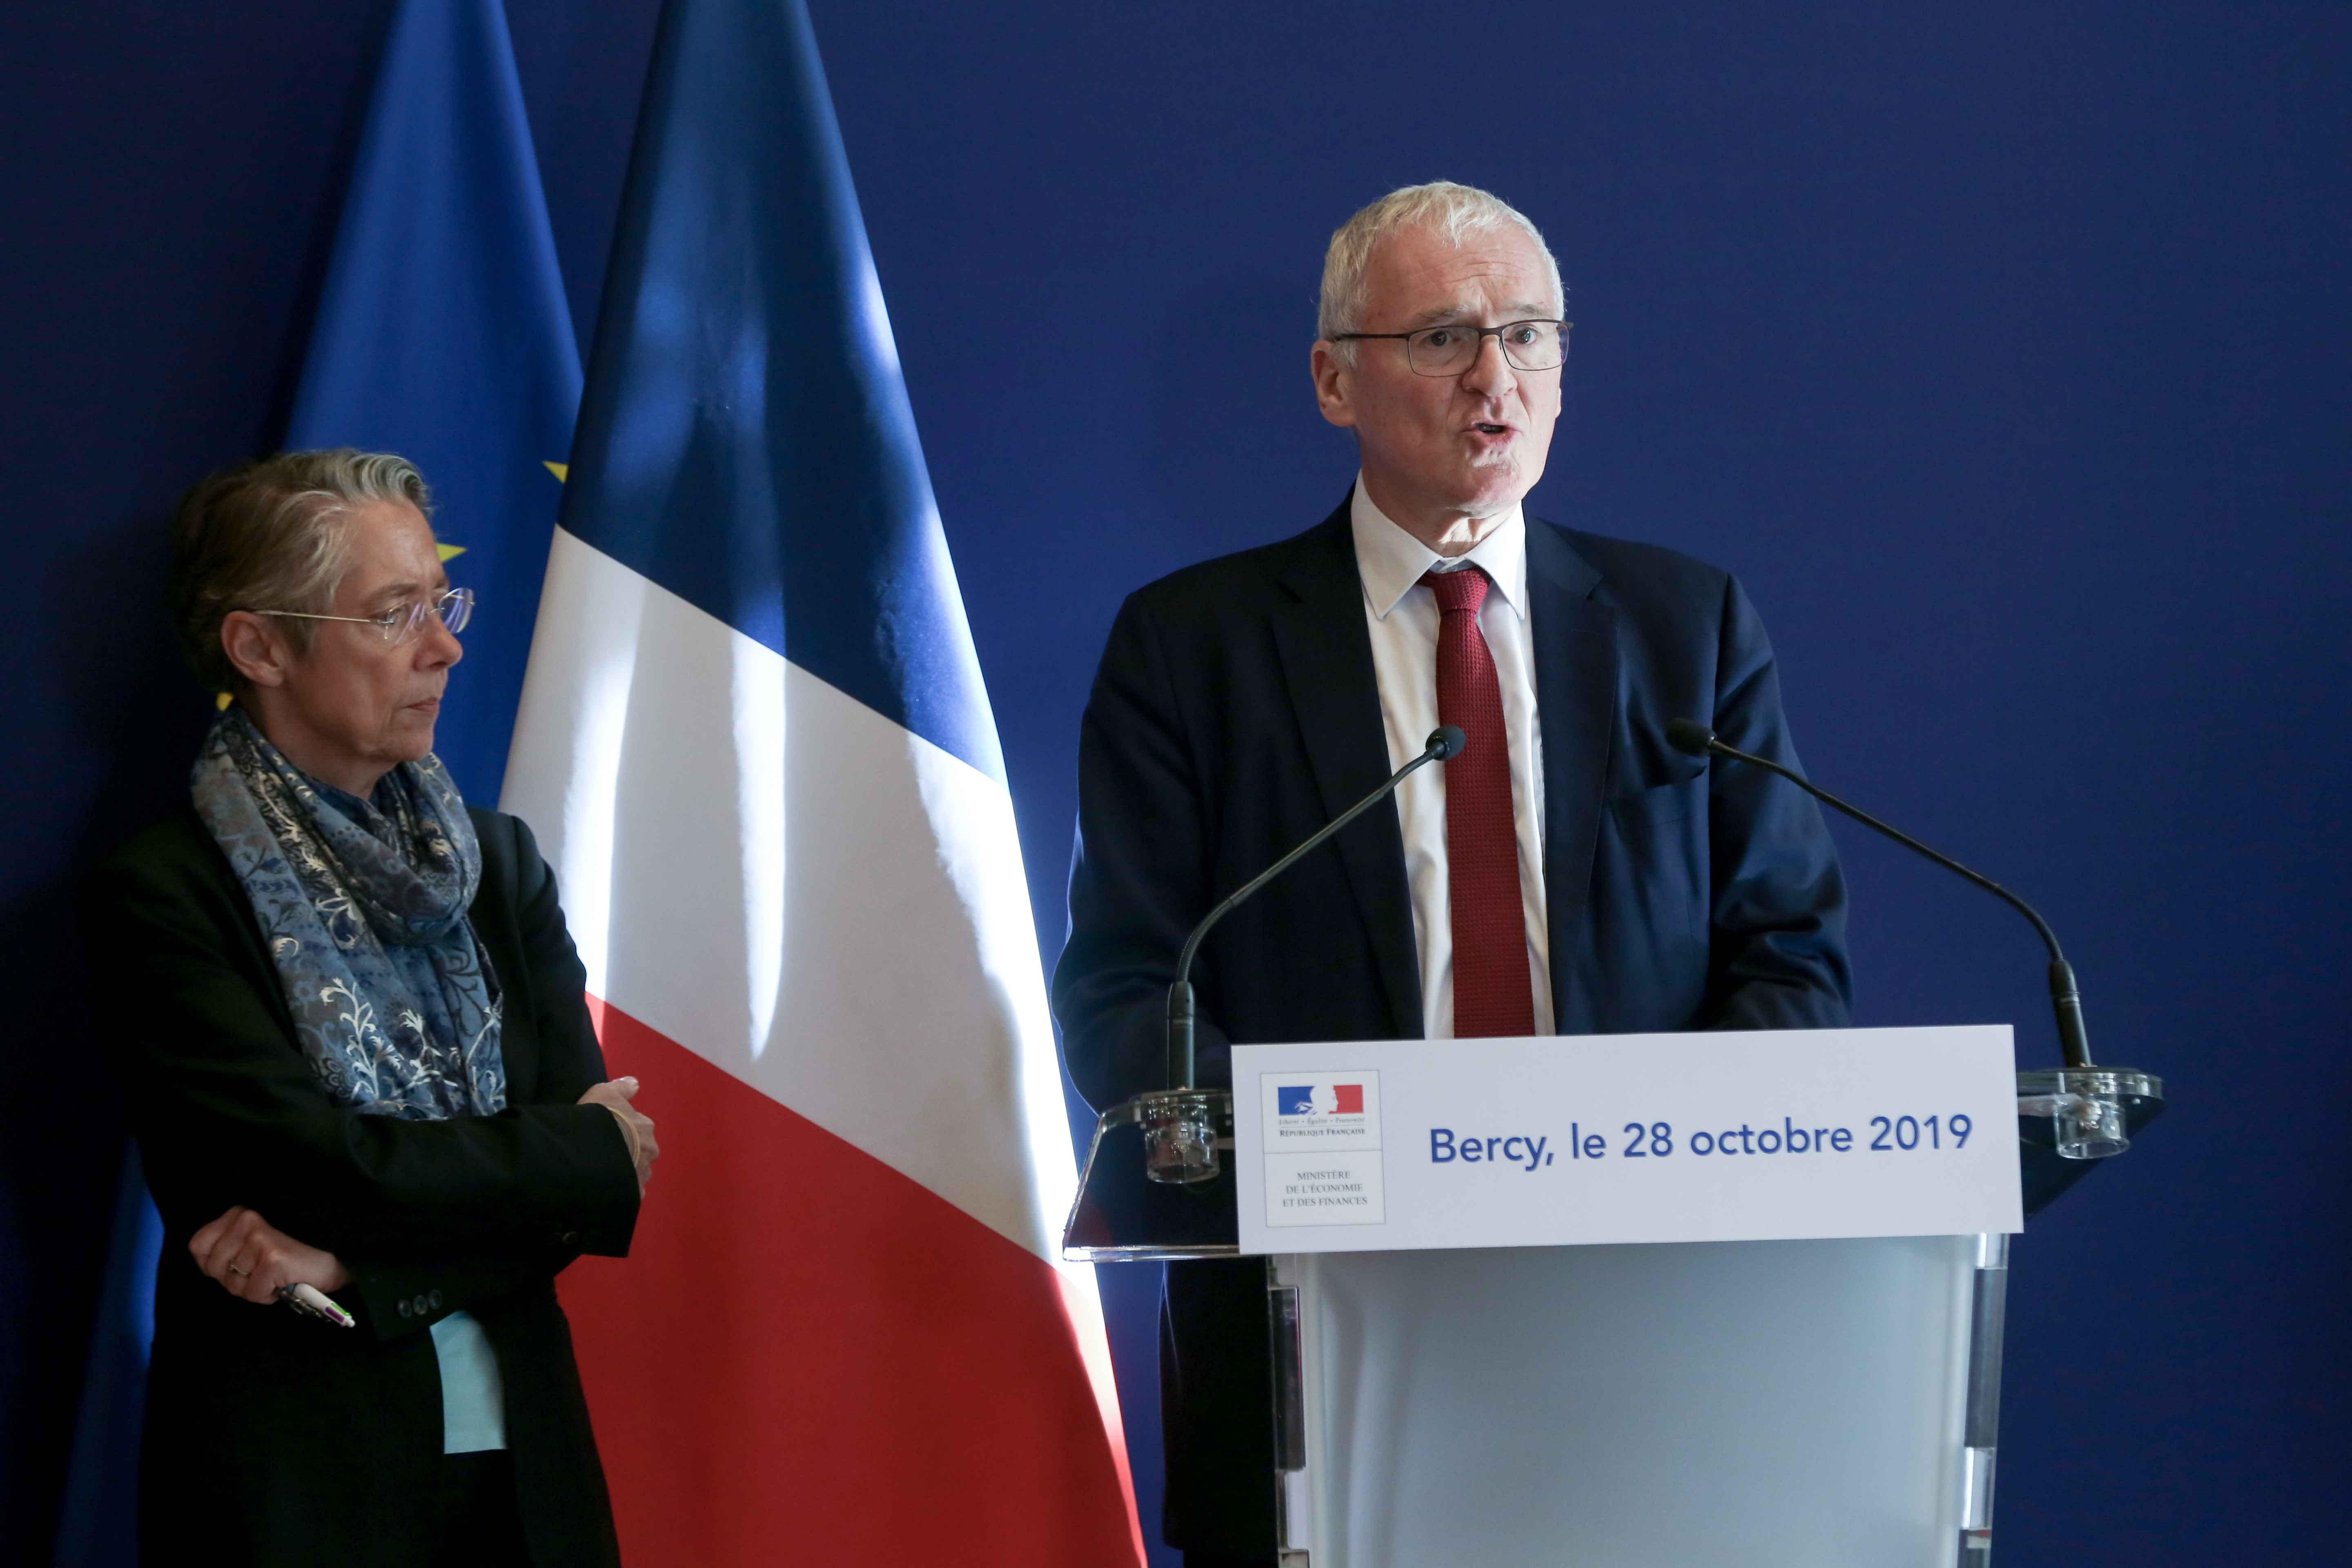 (From L to R) French Minister for the Ecological and Inclusive Transition Elisabeth Borne and French energy giant EDF's CEO Jean-Bernard Levy give a press conference to present a report concerning the construction of the EPR at the Flamanville nuclear plan